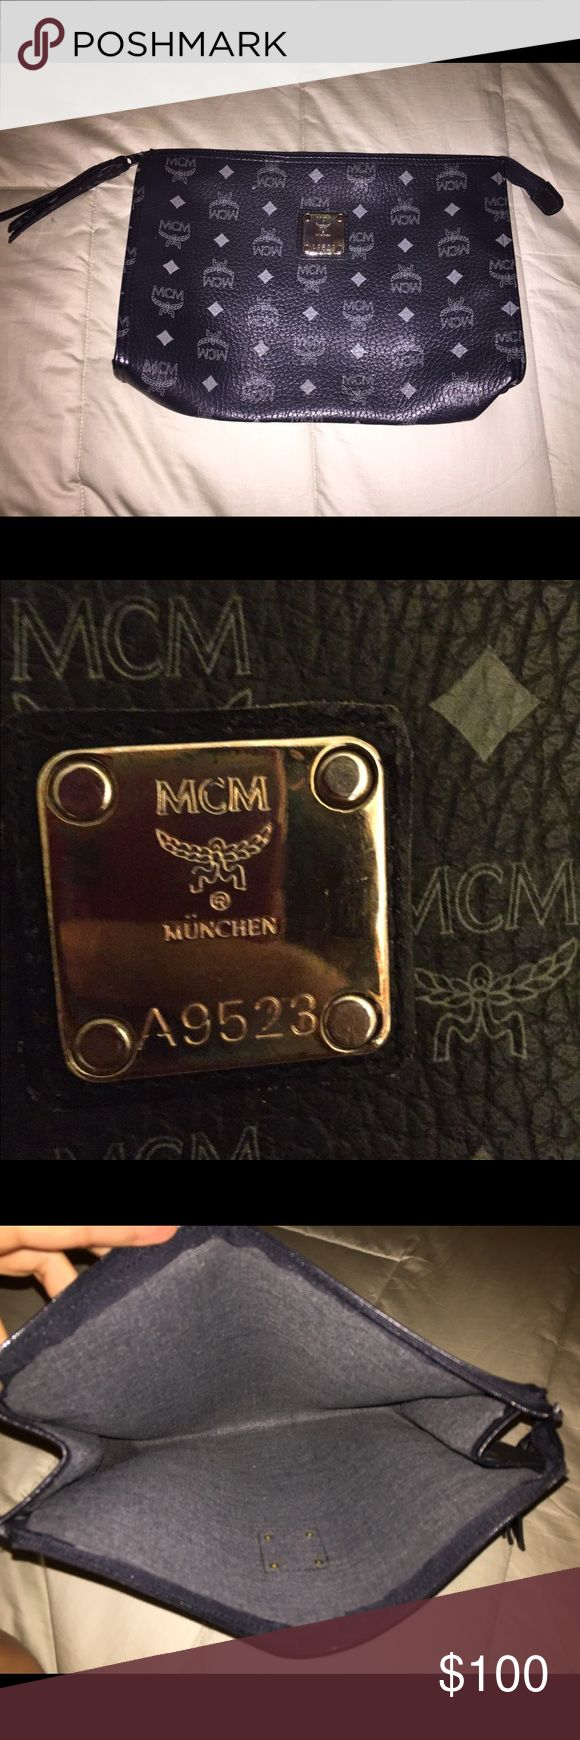 MCM clutch Not authentic!!! I repeat... Not authentic!! I bought this a while ago, here on poshmark and trusted the seller when she promised it was a vintage authentic piece. She has since removed her closet 😔 My leather repair man has recently informed me that this is not authentic so i am just trying to make some of my money back.  Clean, excellent condition. Leather. Has a tassle on the zipper pull. Can be used as a clutch or cosmetic pouch. It is 11.5 inches wide and 8.5 inches tall…